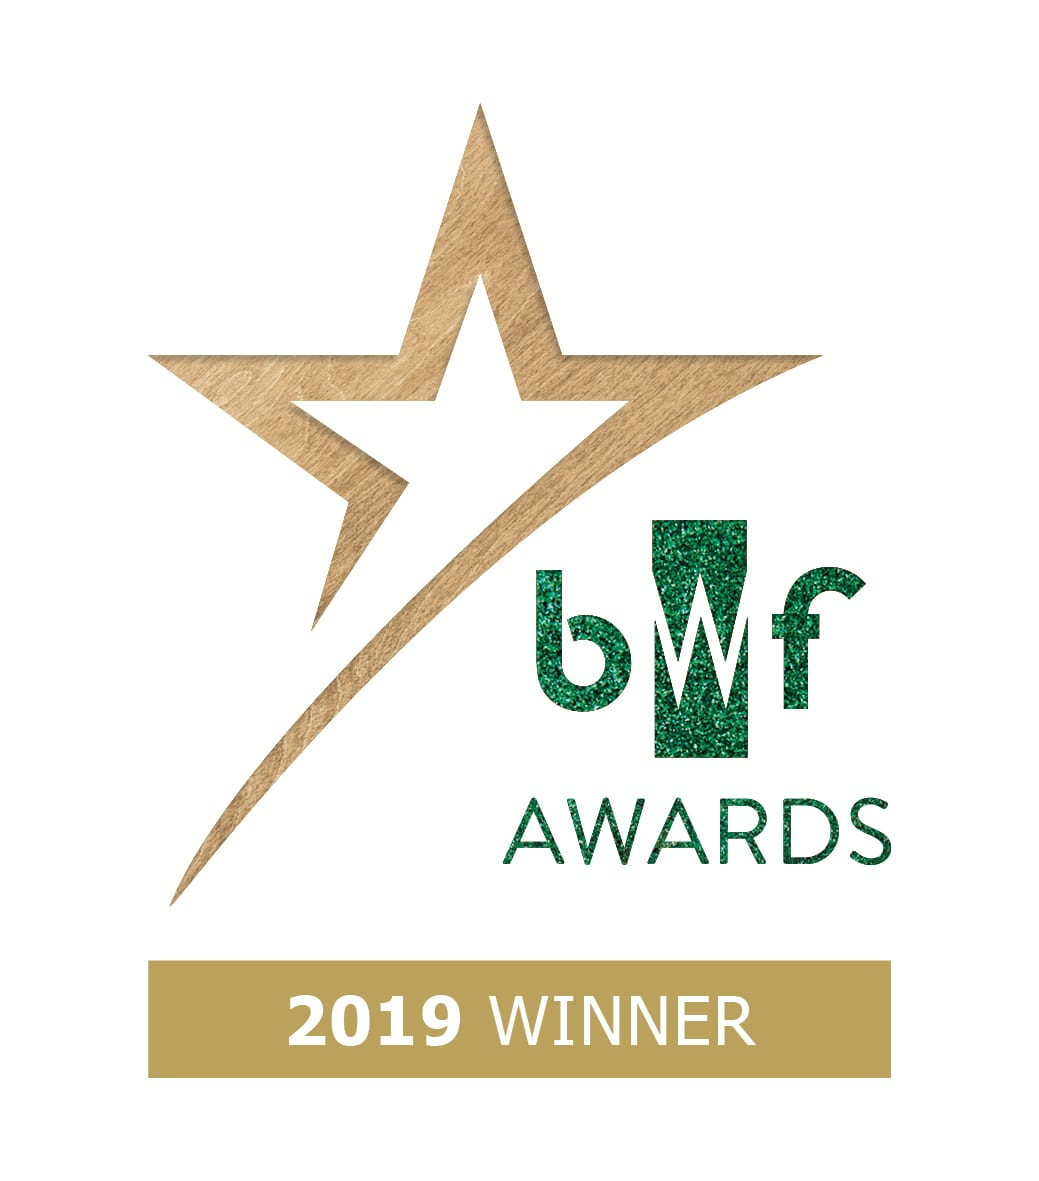 BWF Awards winner logo